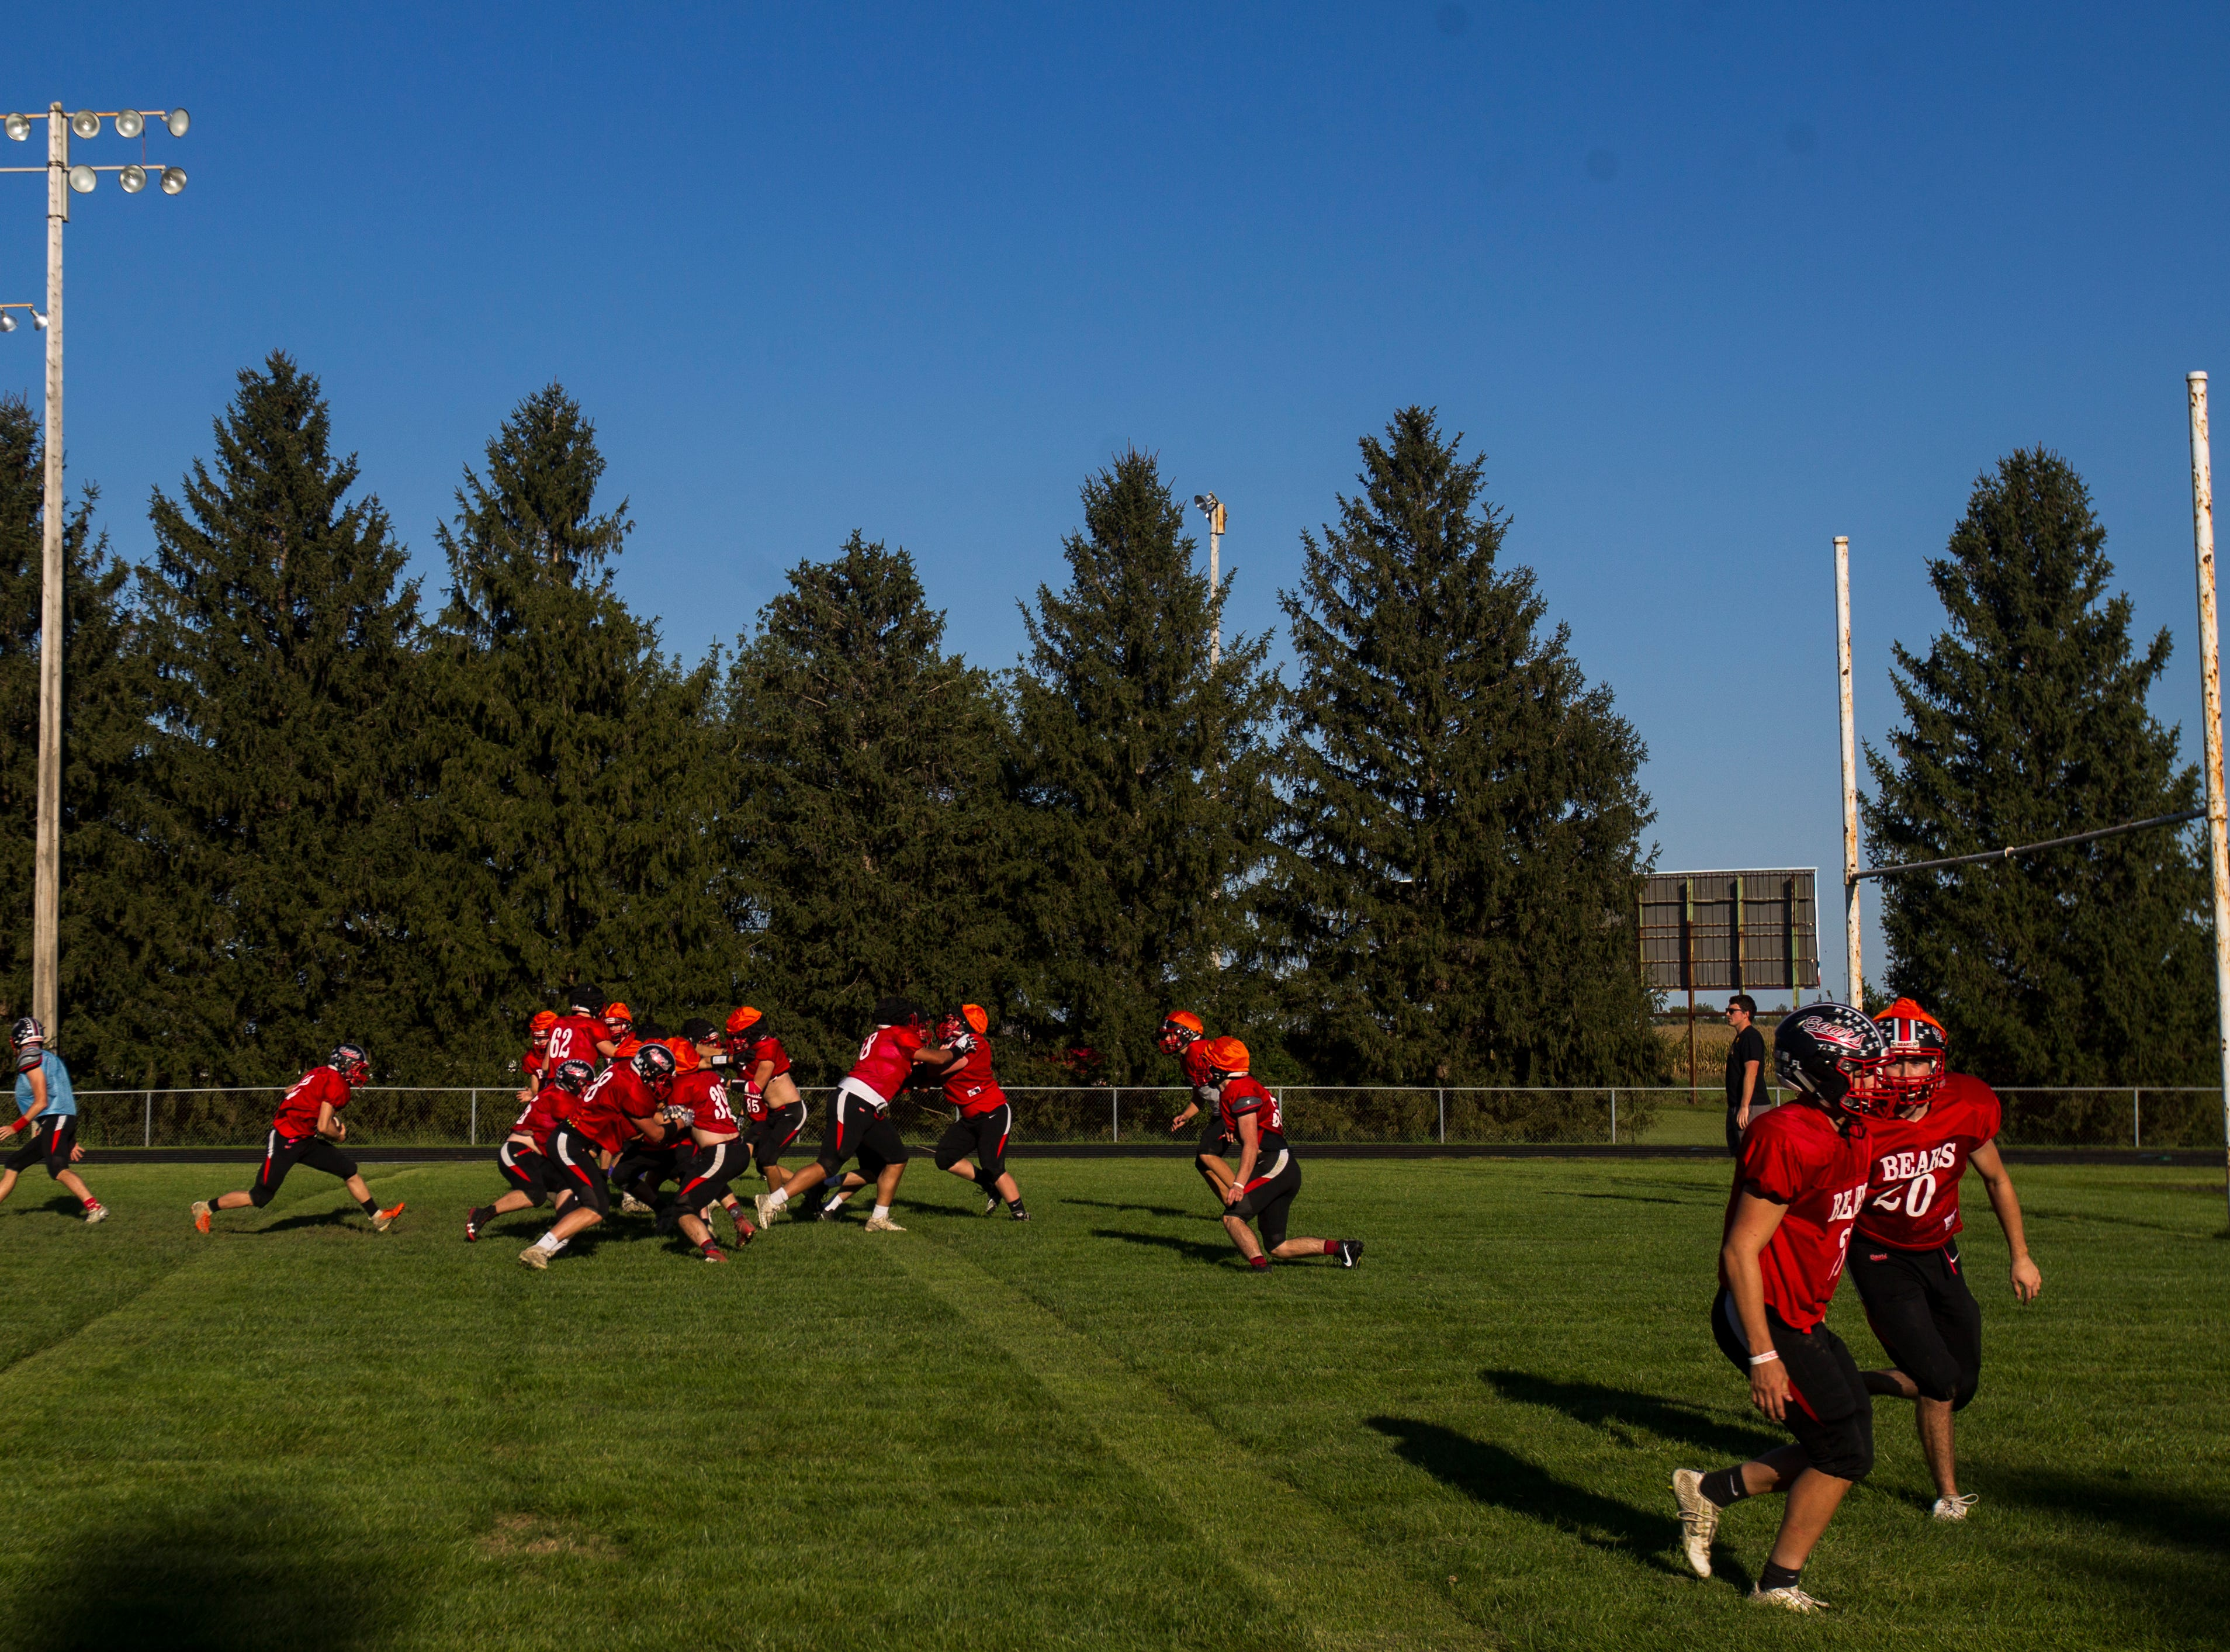 West Branch players run through drills during a varsity football practice on Tuesday, Sept. 11, 2018, at the West Branch High School practice field.